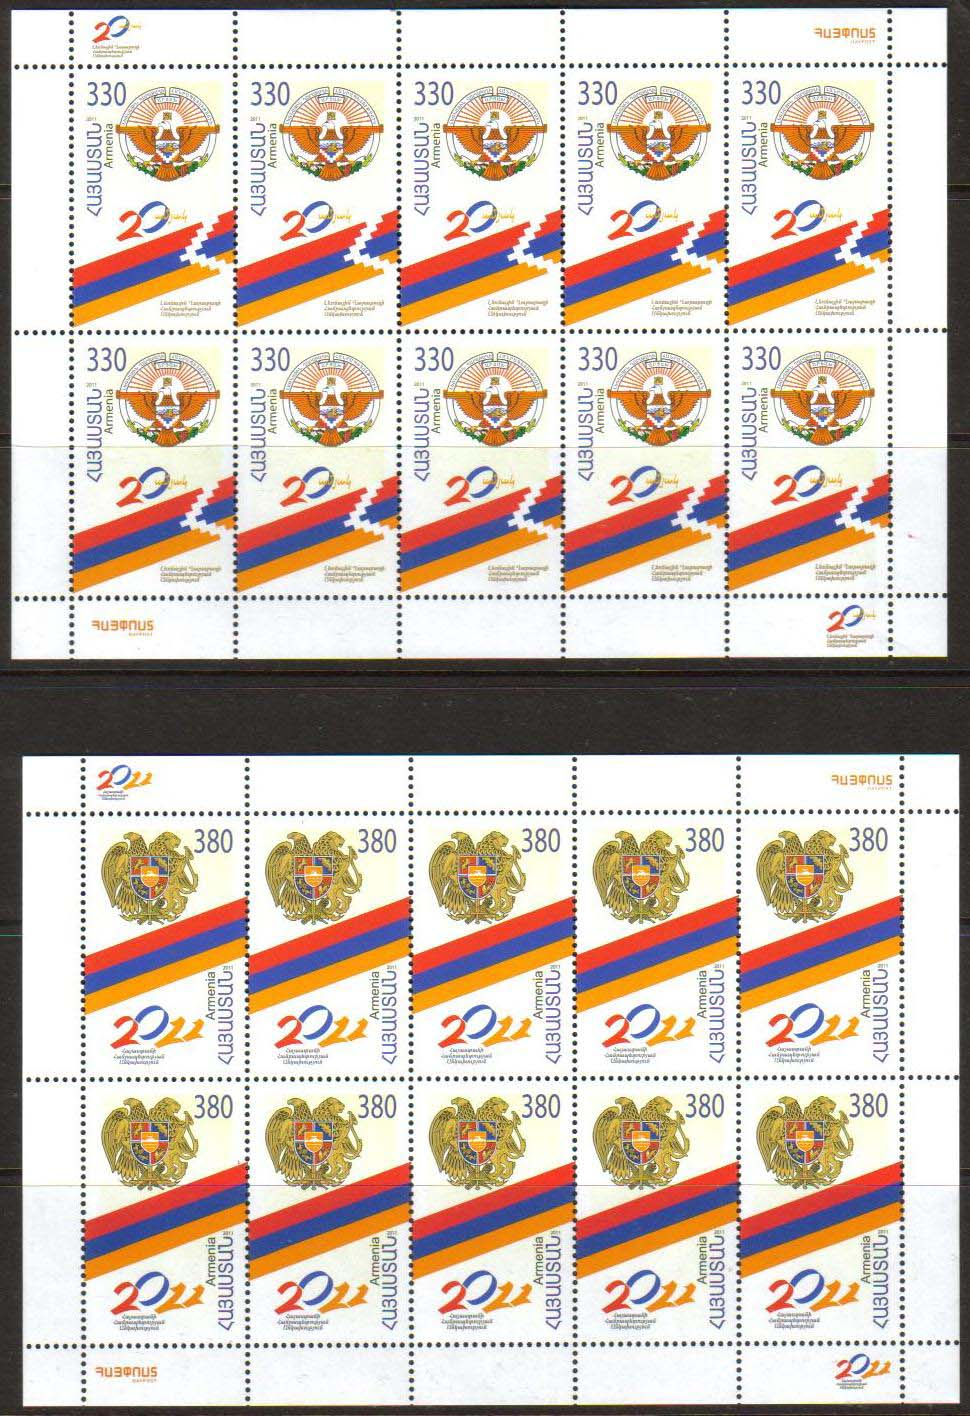 <font =4-40s>540-1, 20th anniversary of Independence, Scott #--- <br>Sheetlets of 10<br>Date of Issue: September 13, 2011<br> <a href=&quot;/images/ArmenianStamps-540-541-Sheets.jpg&quot;>   <font color=green><b>View the image</b></a></font>